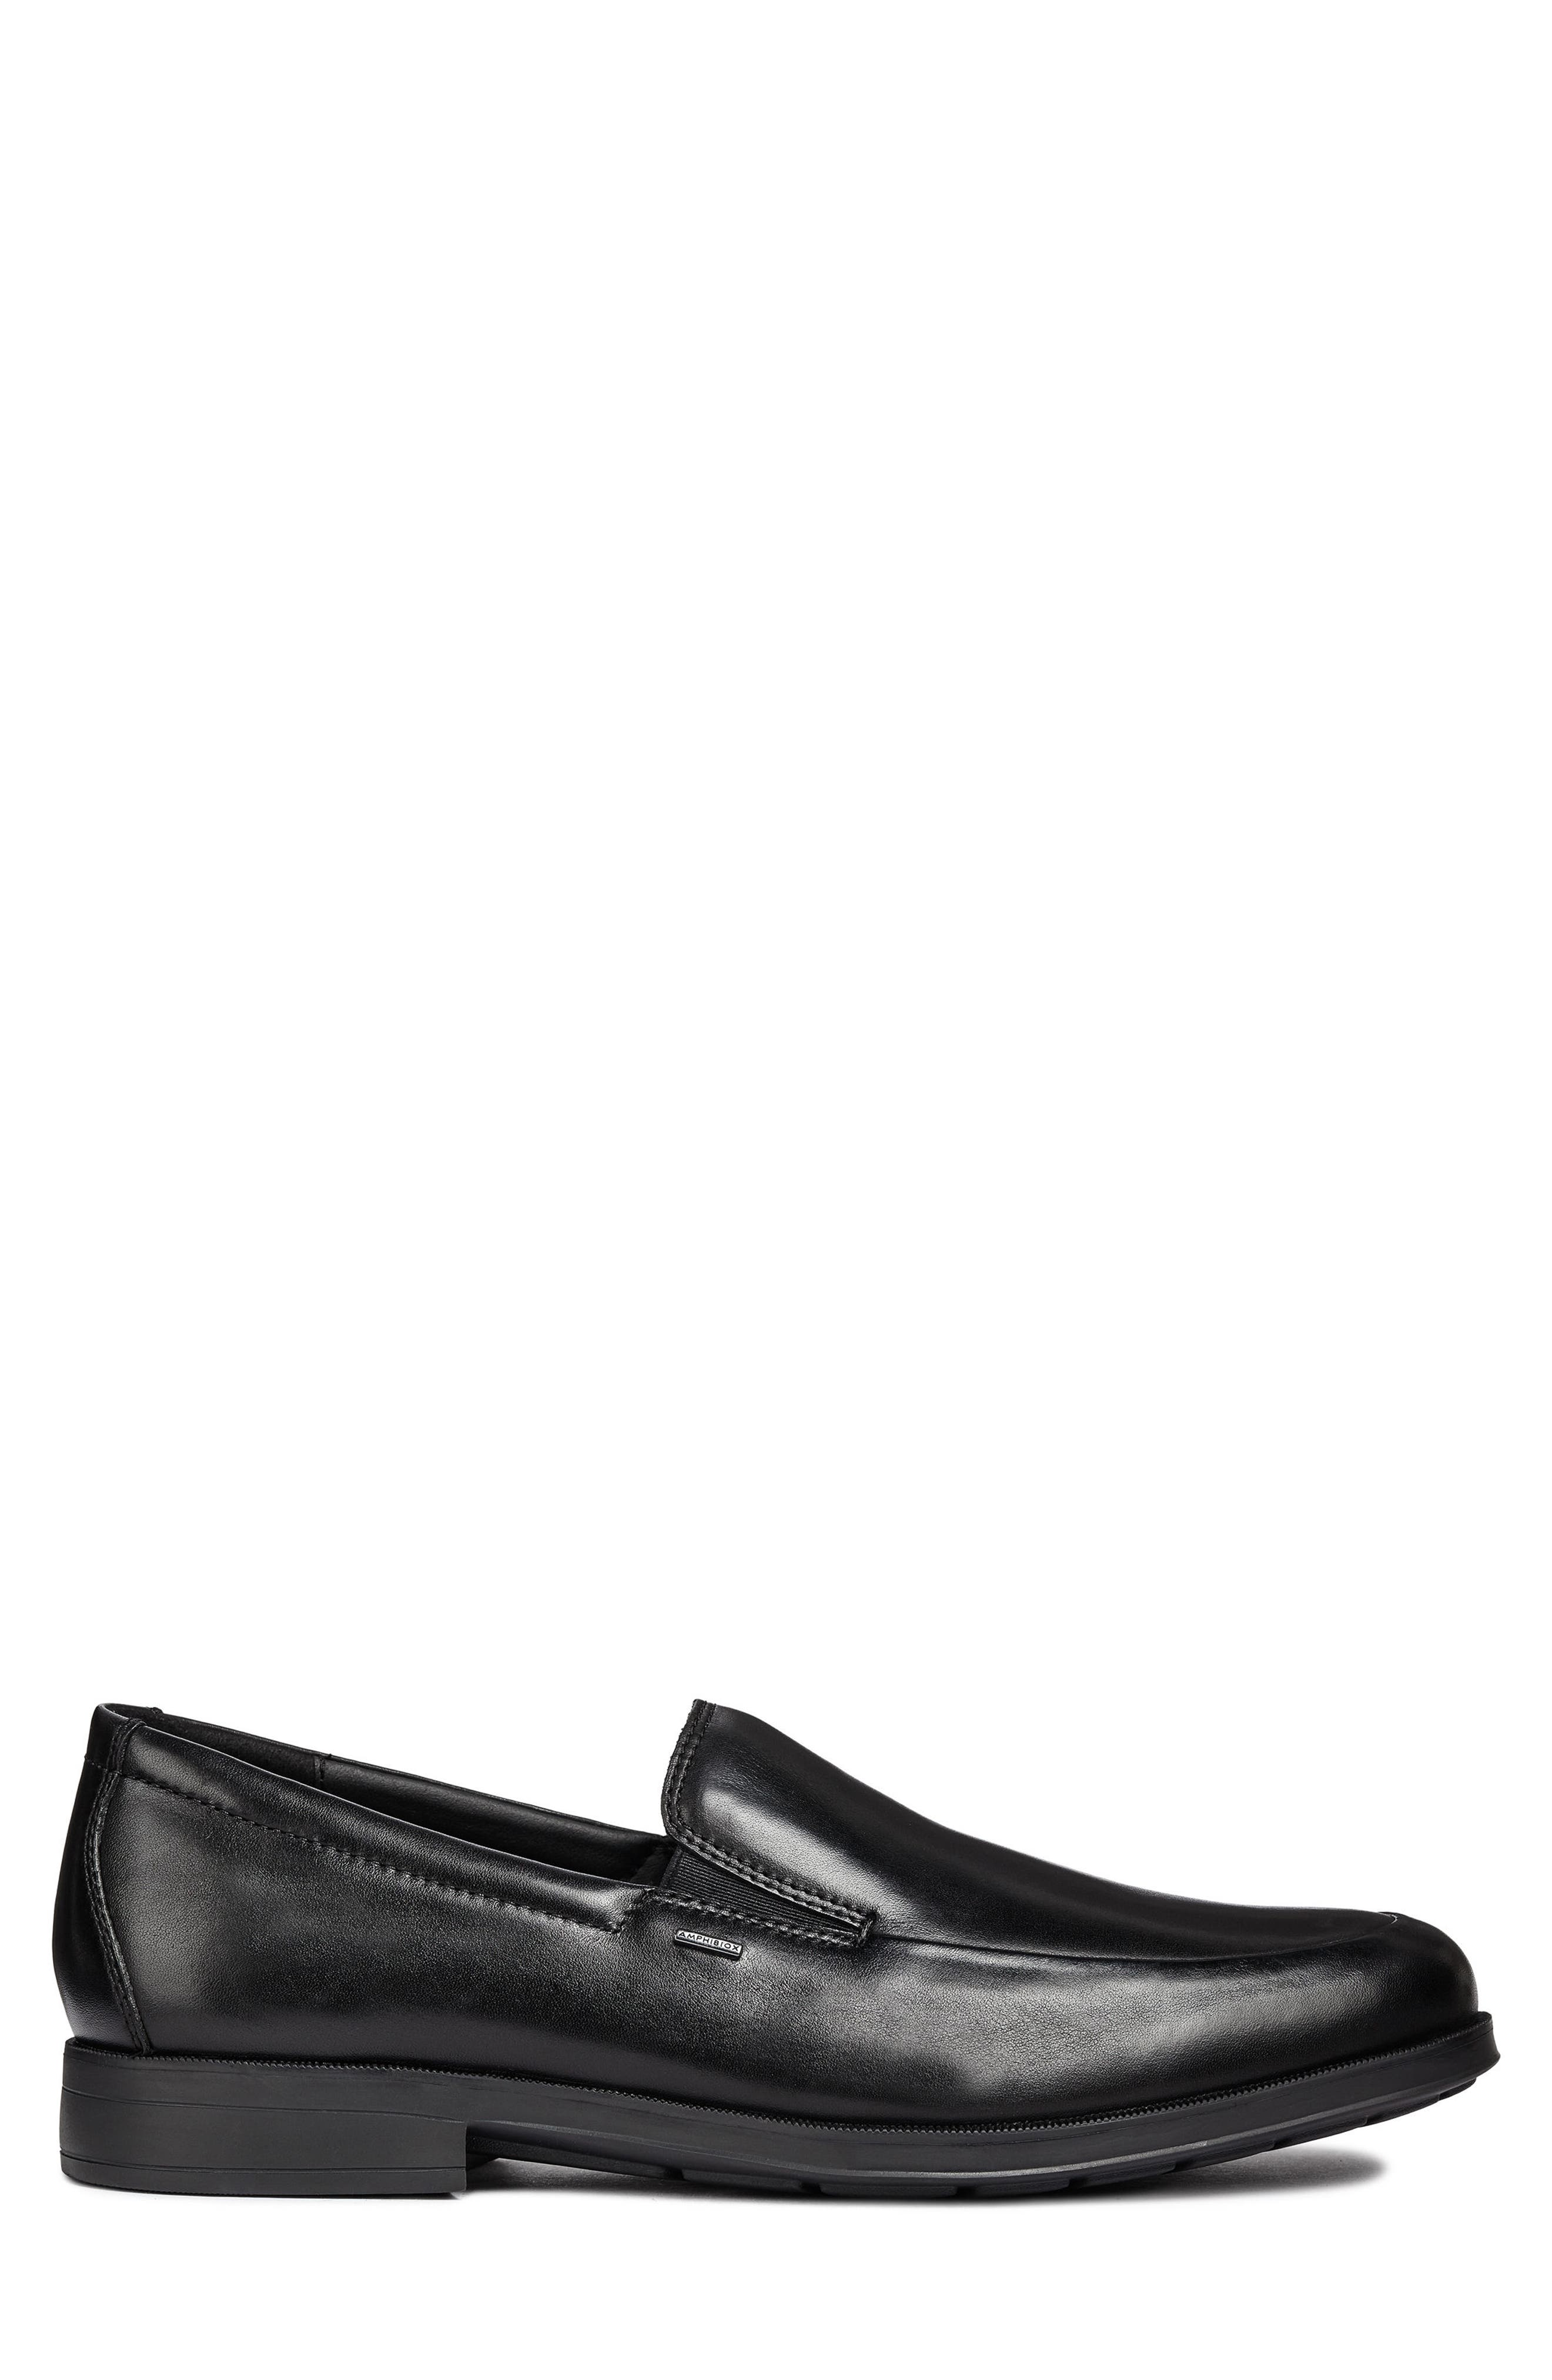 GEOX, Hilstone ABX 2 Loafer, Alternate thumbnail 3, color, 001